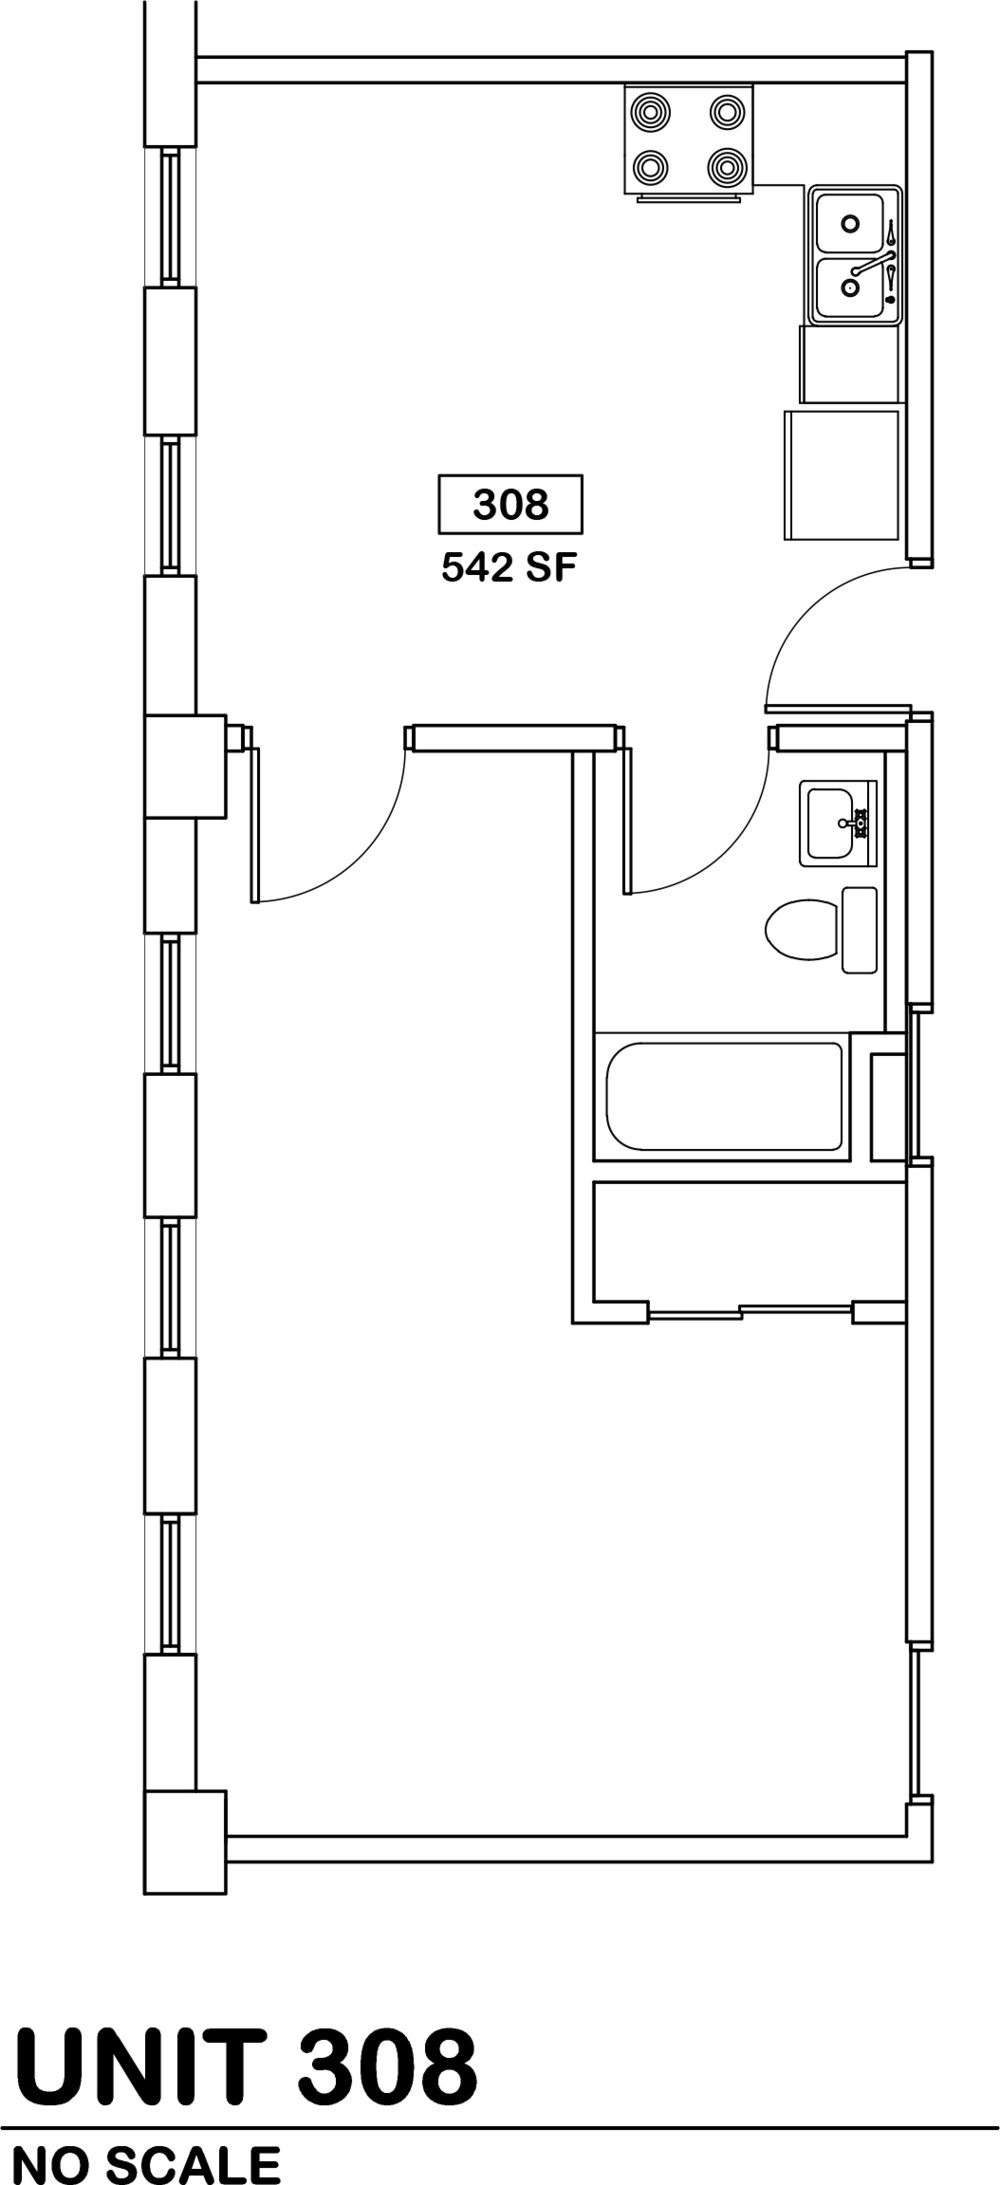 studio  $610 / 542 sq ft